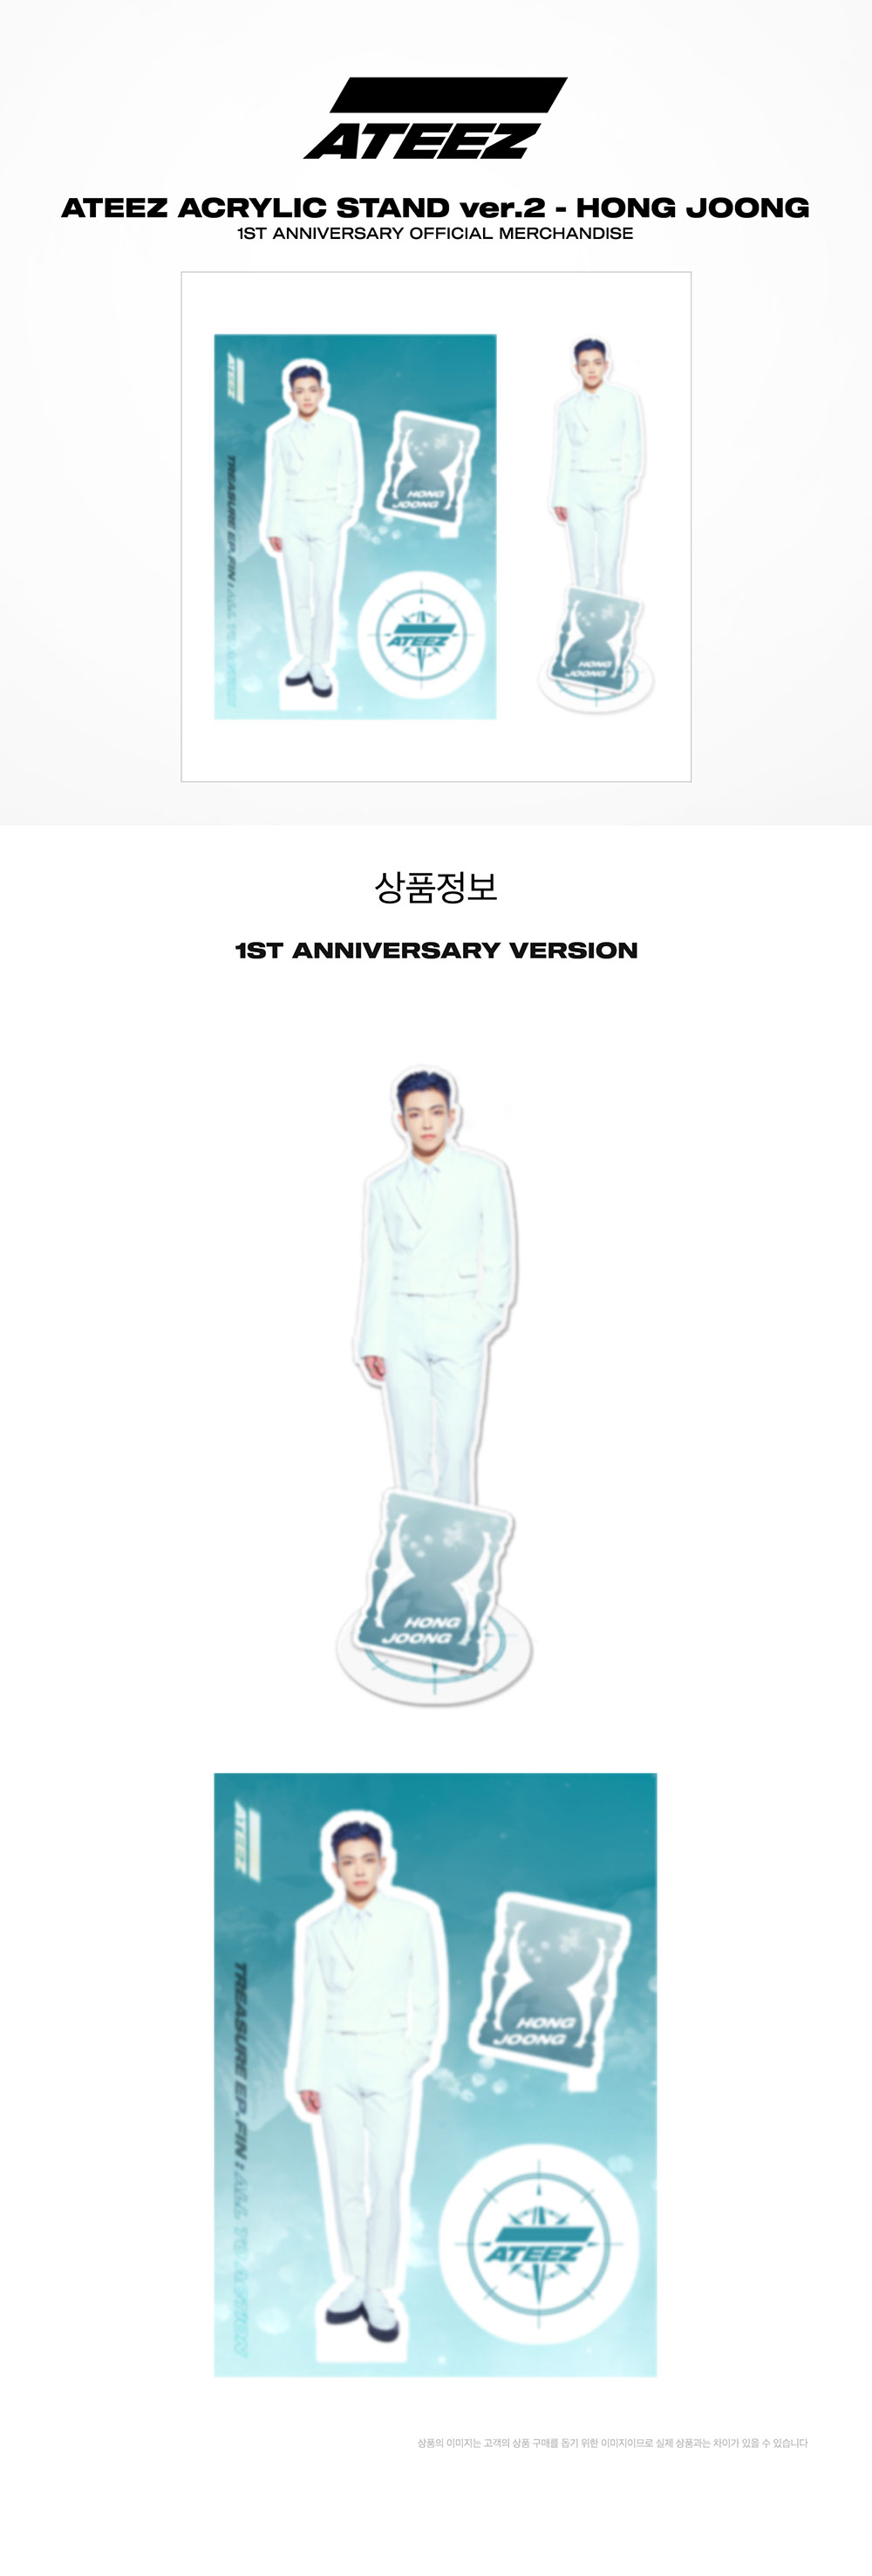 ateez_1st_anniversary_ACRYLIC_STAND2-7